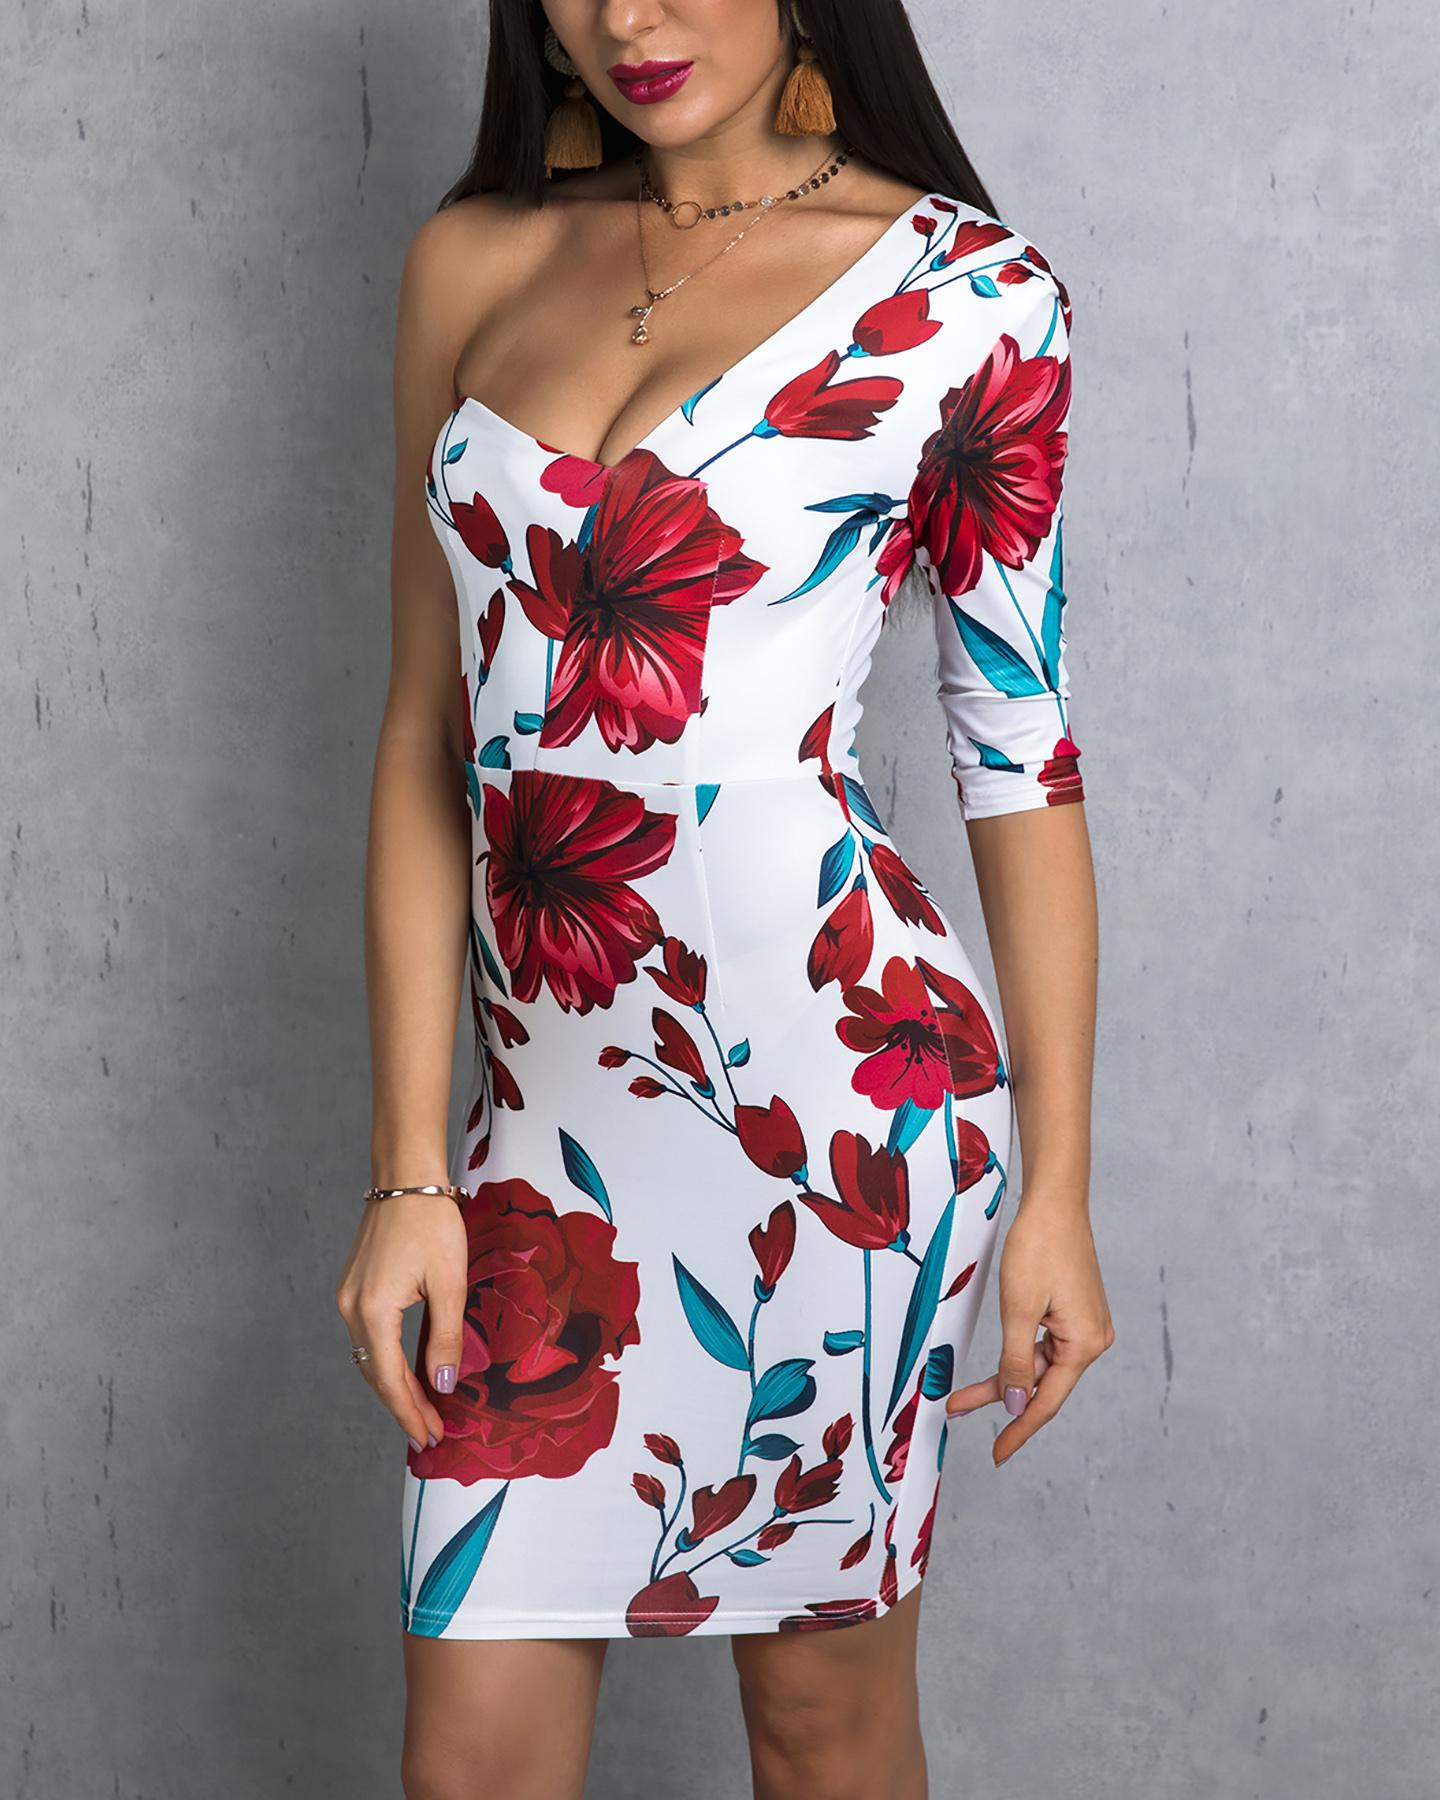 chicme / One Shoulder Floral Print Bodycon Dress